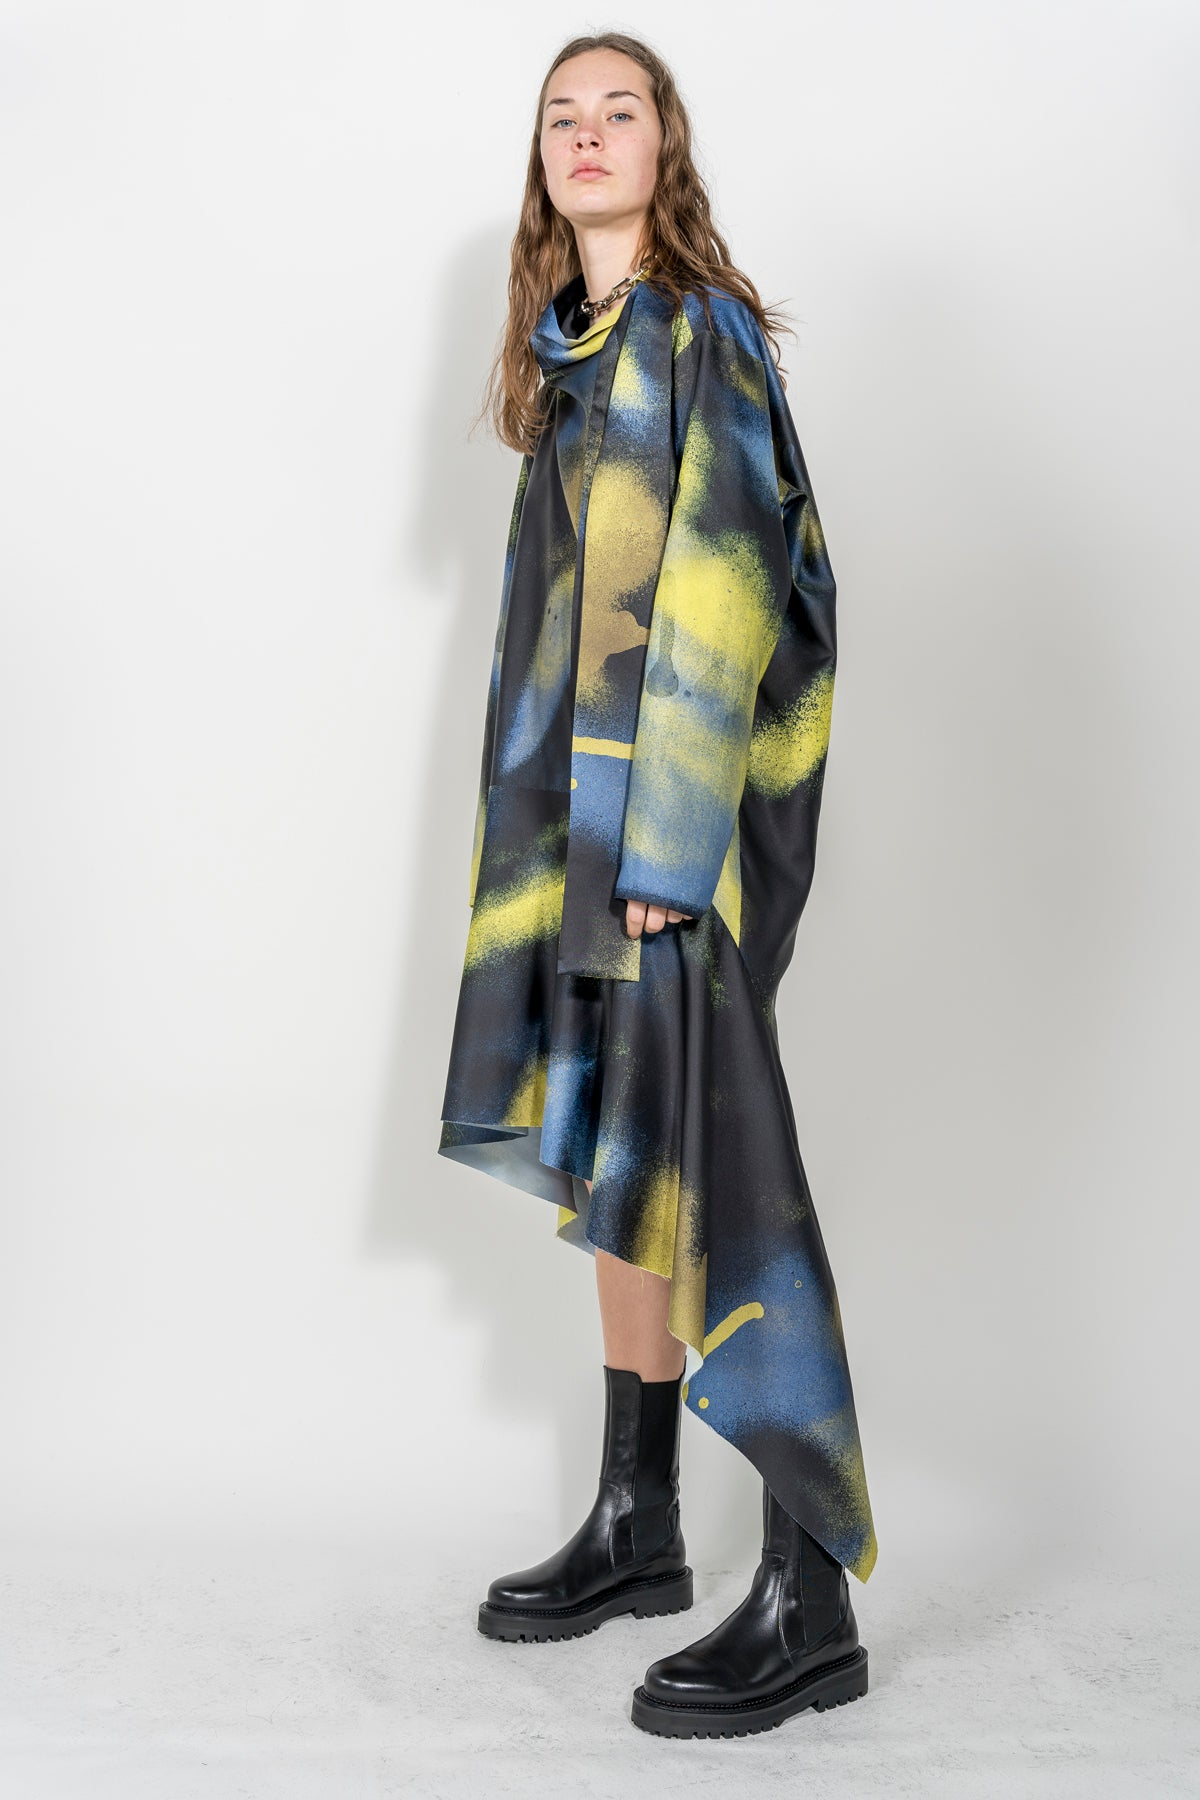 LONG TURTLENECK DRESS IN YELLOW & BLACK PRINT